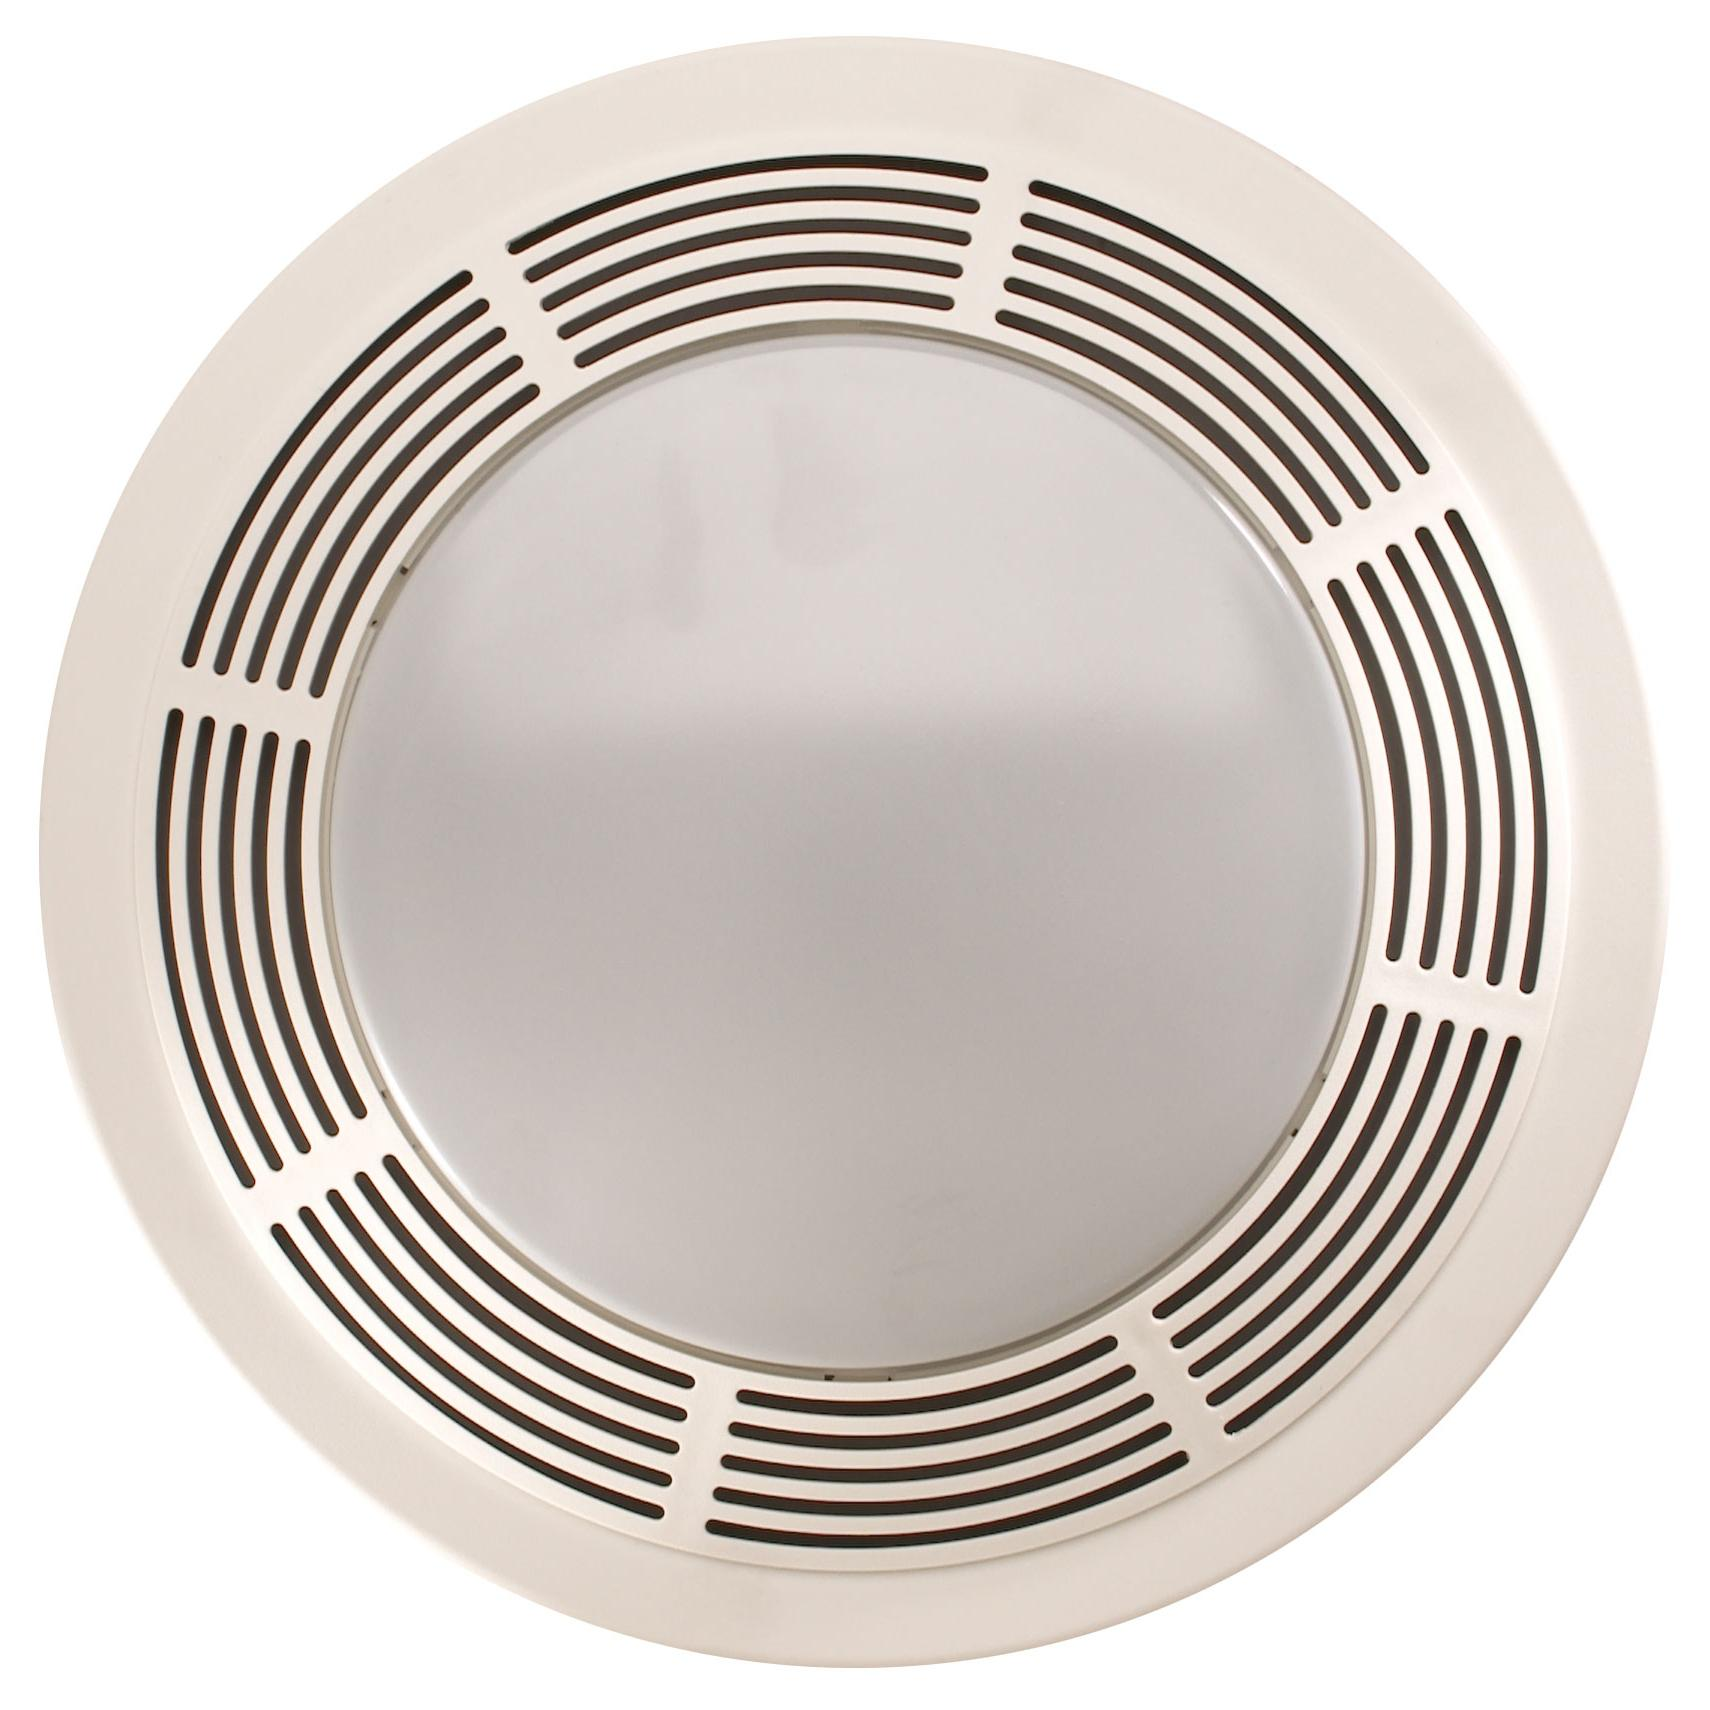 BROAN 750 Fan Light Night Light  Round White Plastic Grille with Glass. Broan 751 Fan and Light with Round White Grille and Glass Lens